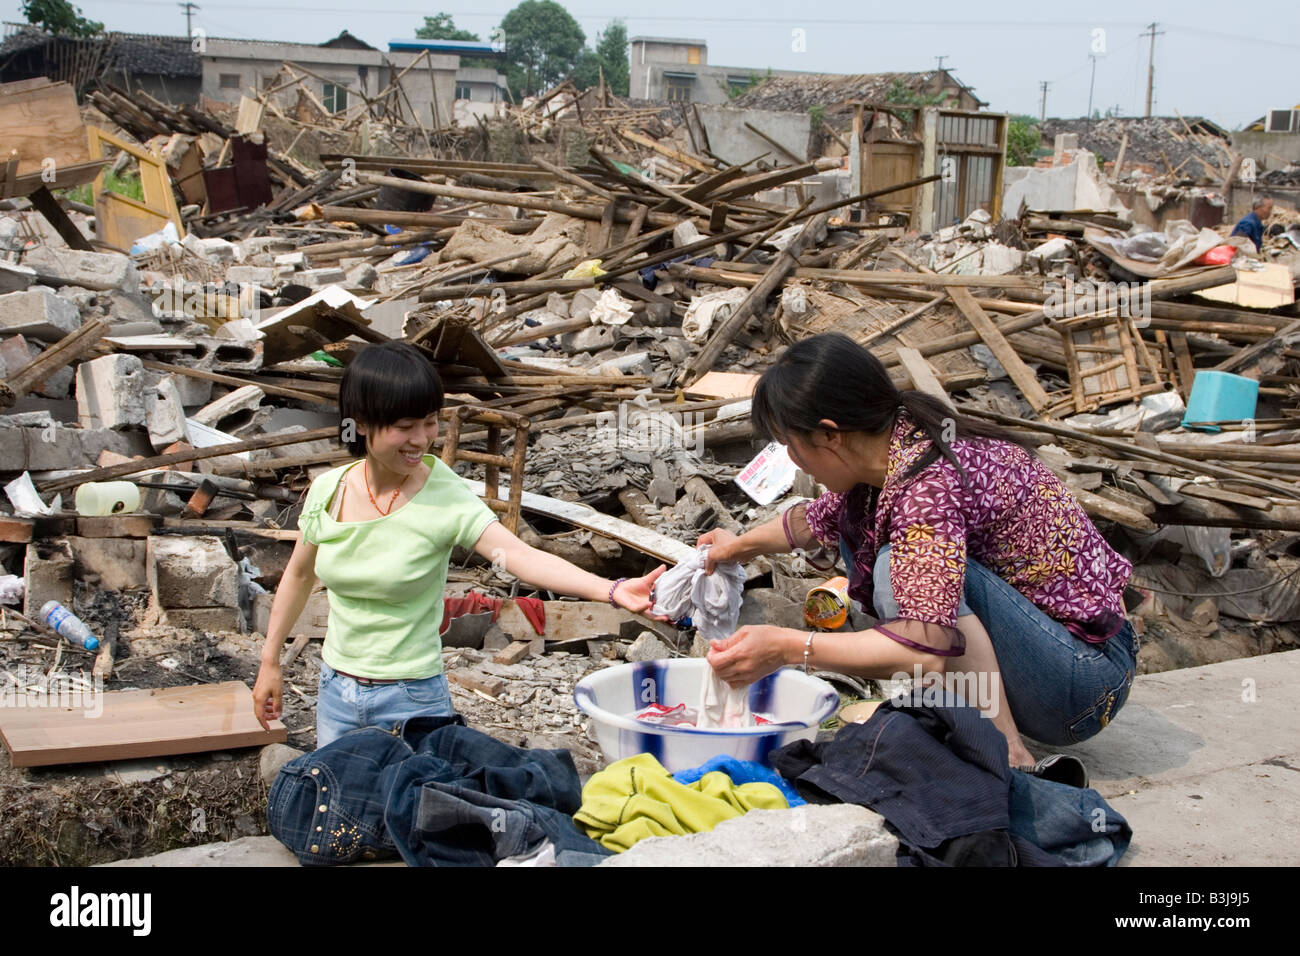 Two survivors of earthquake in Sichuan on May 12 2008 wash clothes outside their destroyed buildings. - Stock Image